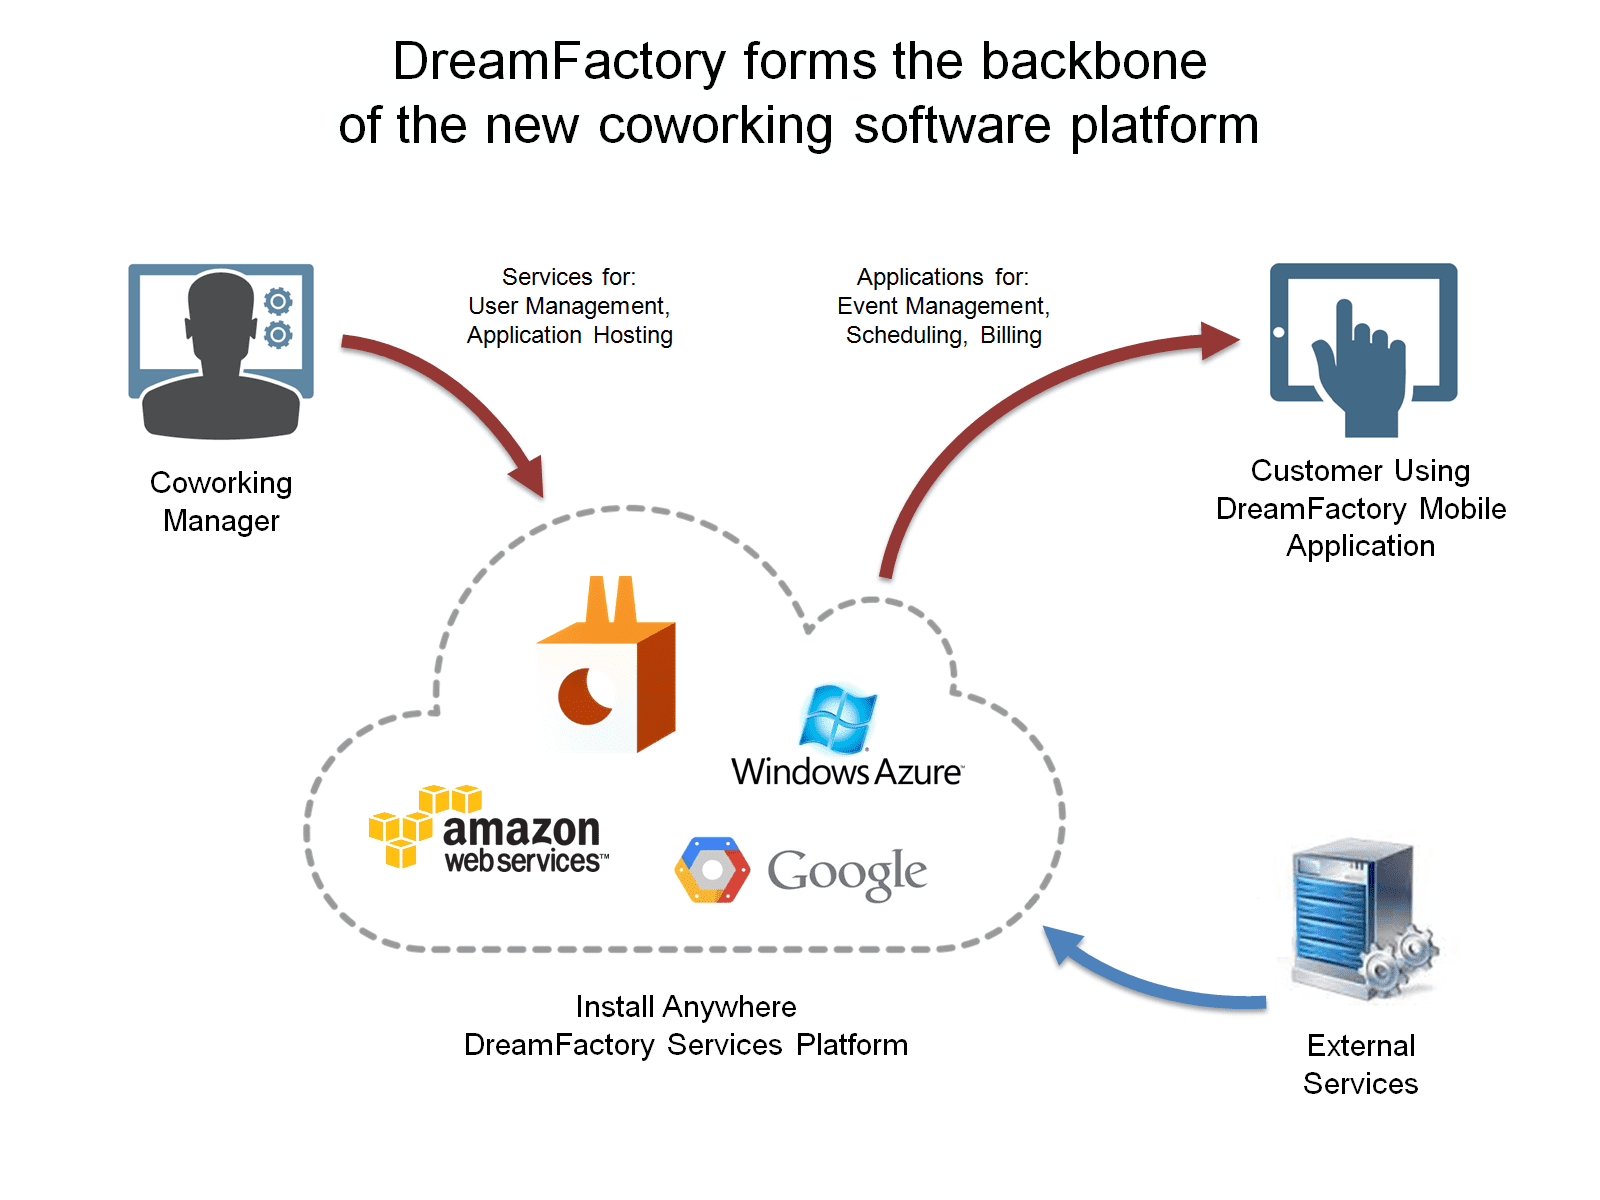 DreamFactory forms the backbone of the new cowering software platform